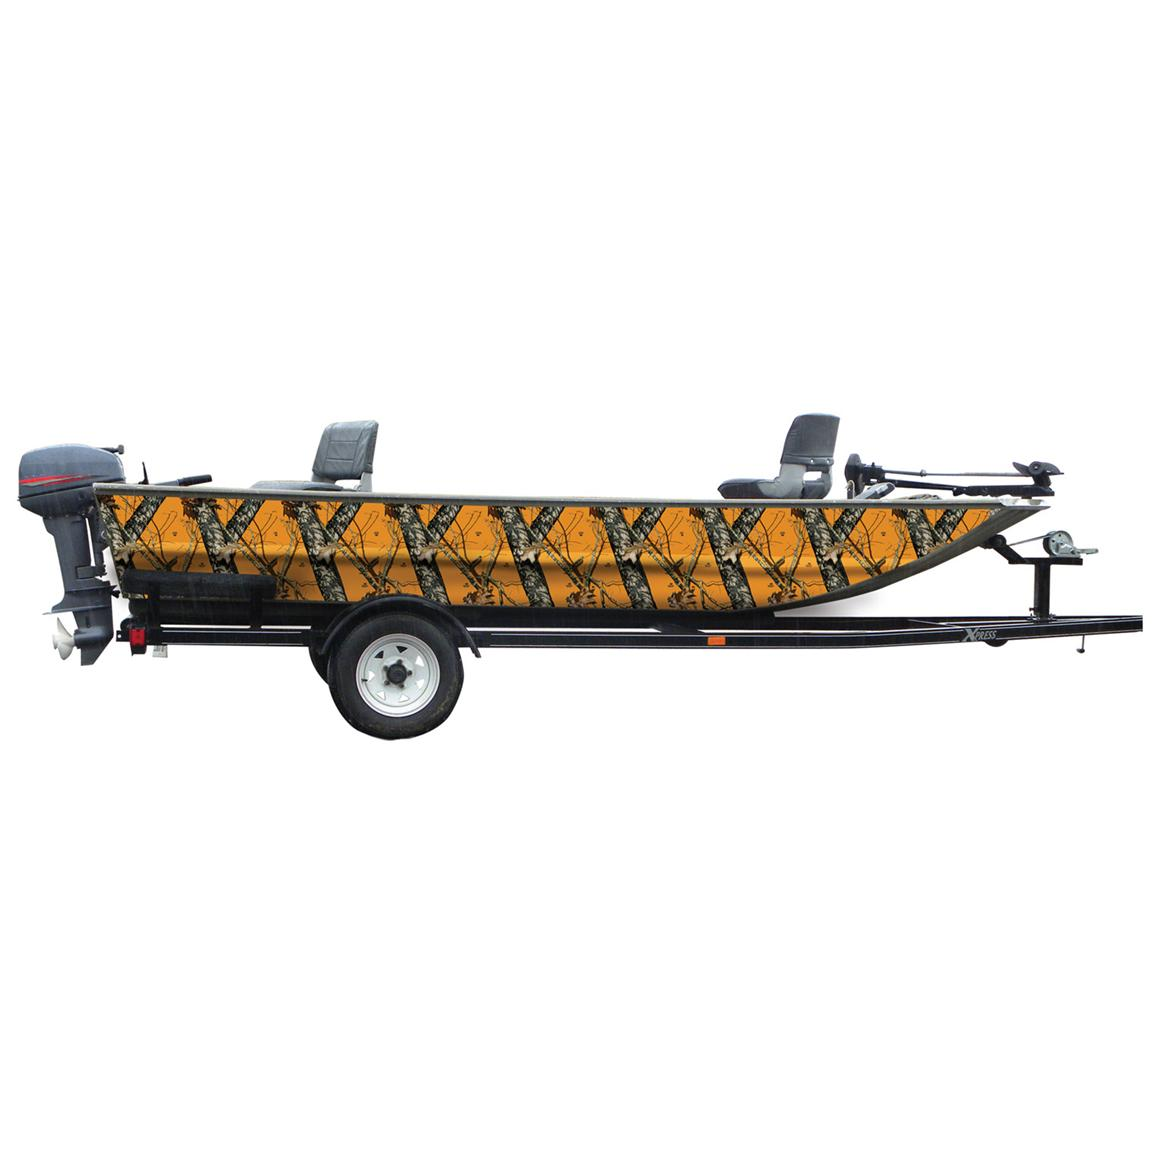 Mossy Oak Graphics® 12' Boat Side Camouflage Kit, Blaze Camo